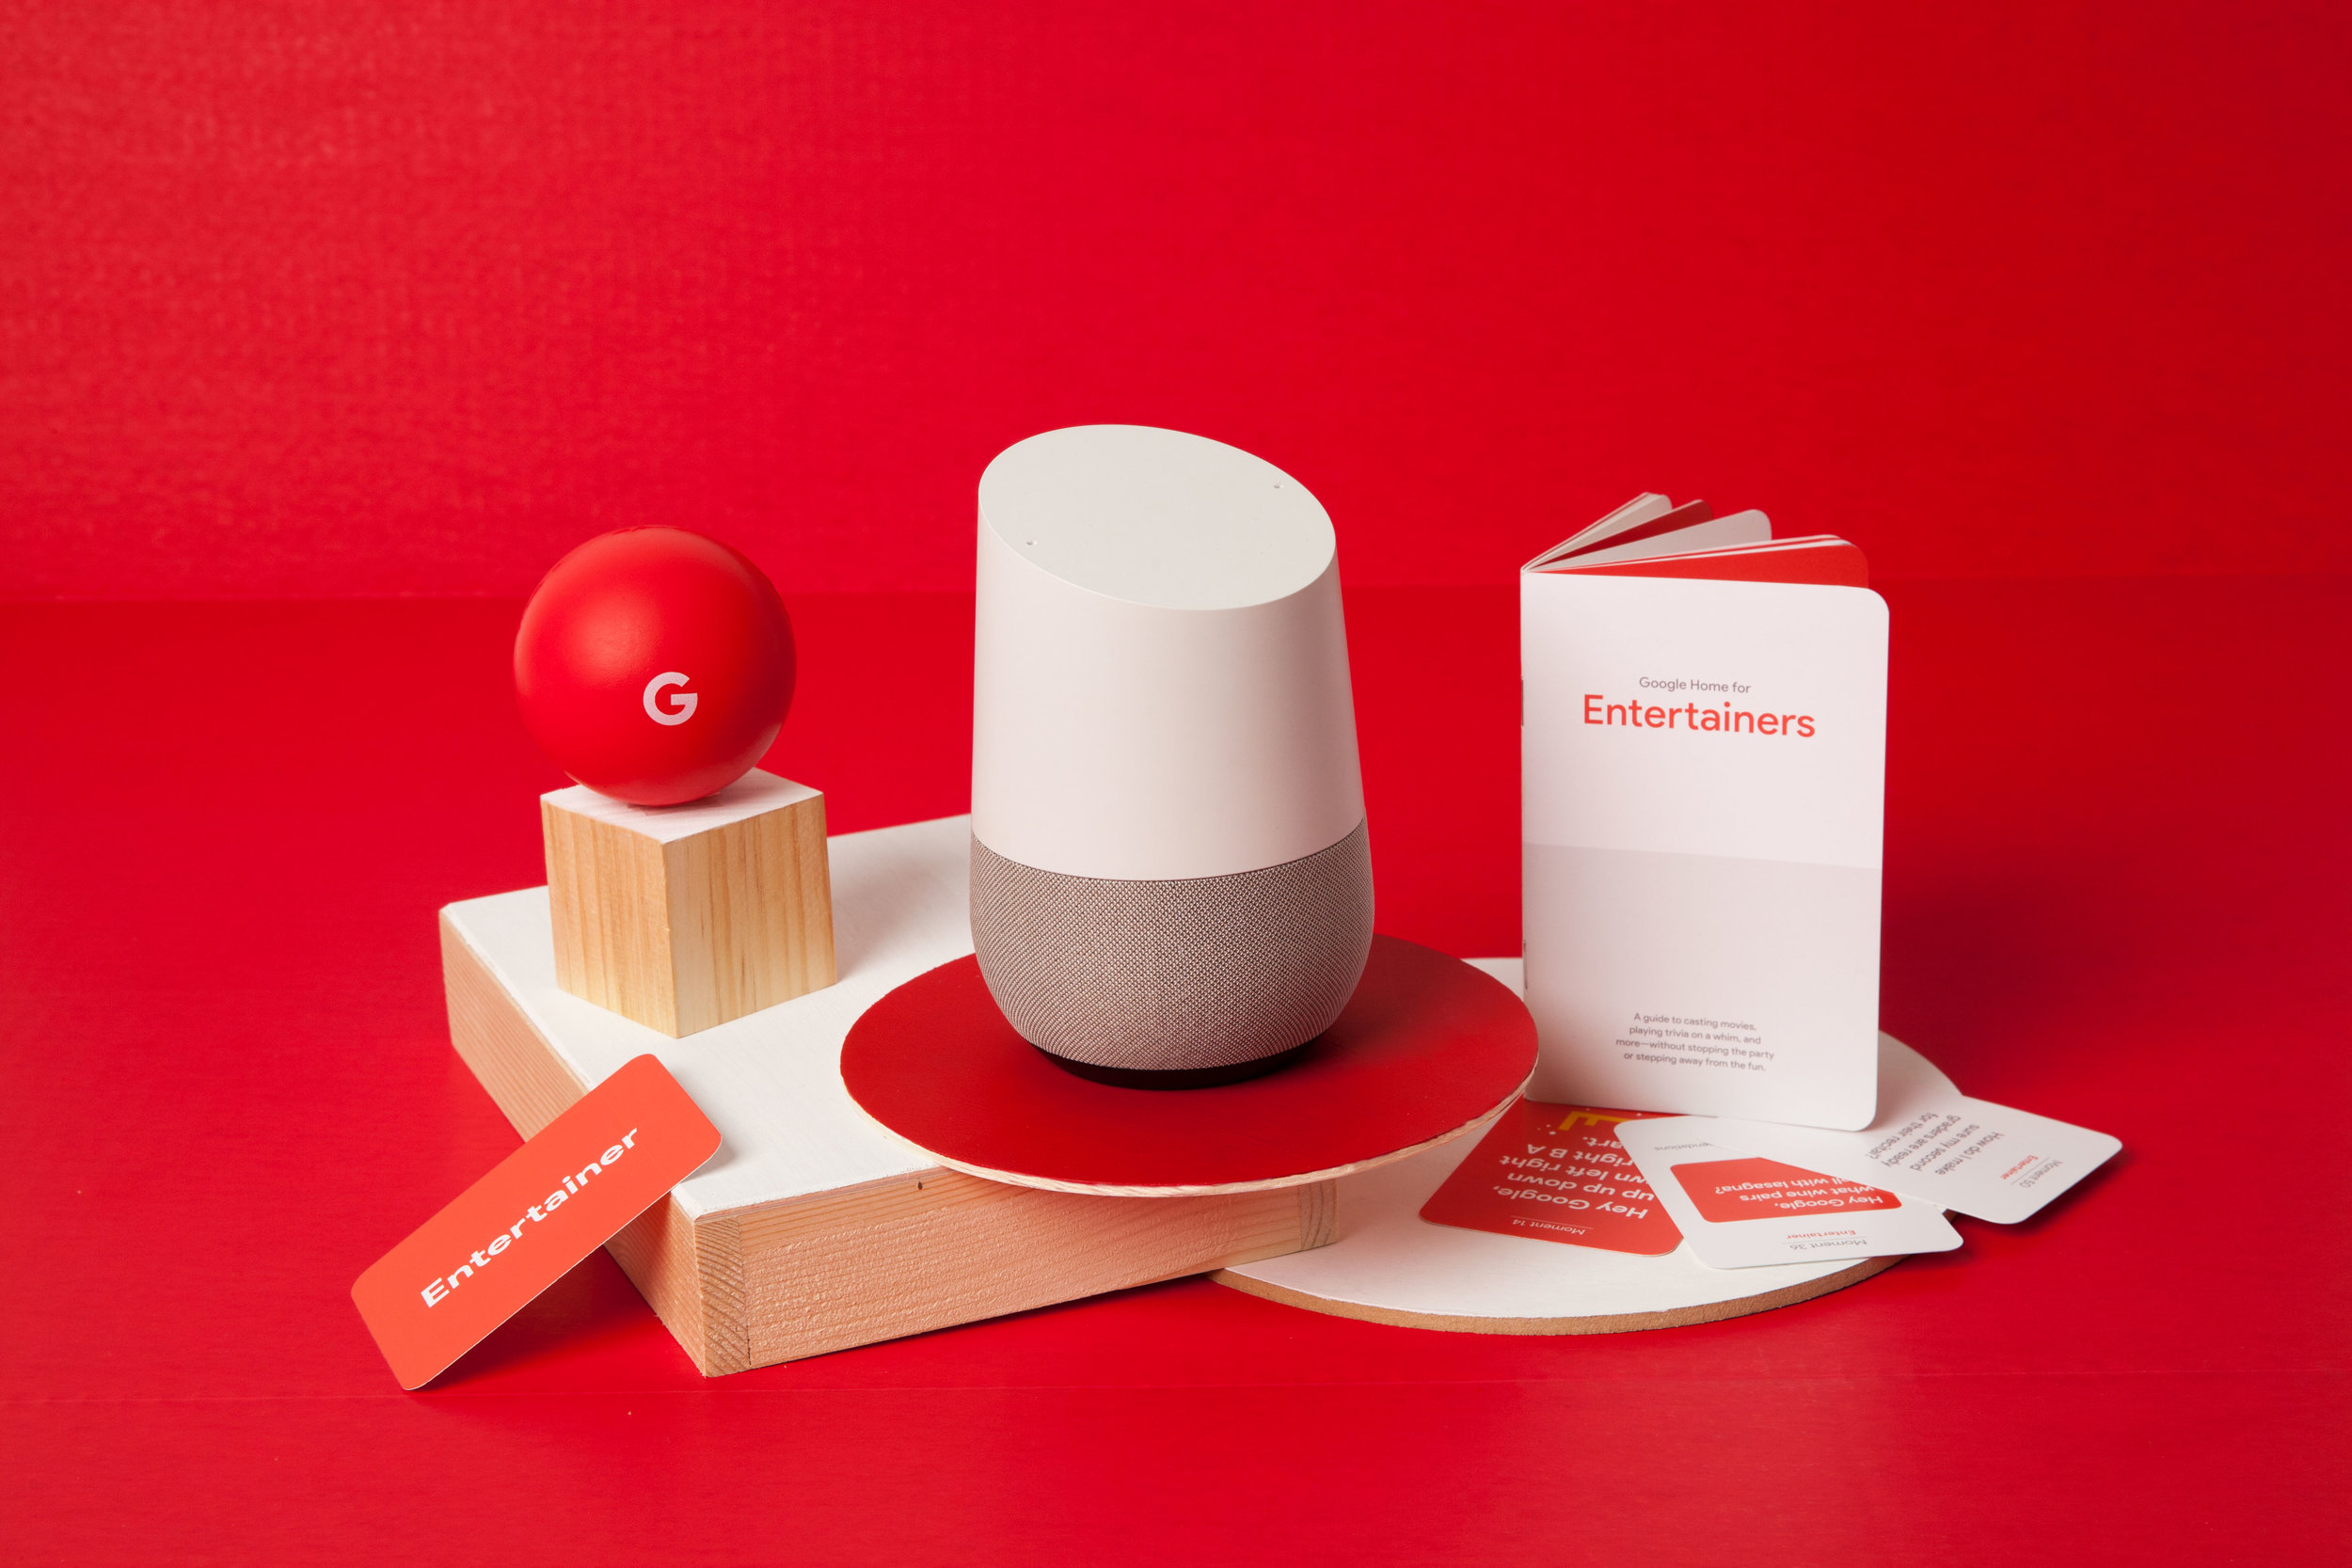 Google_Home-038_Red.jpg